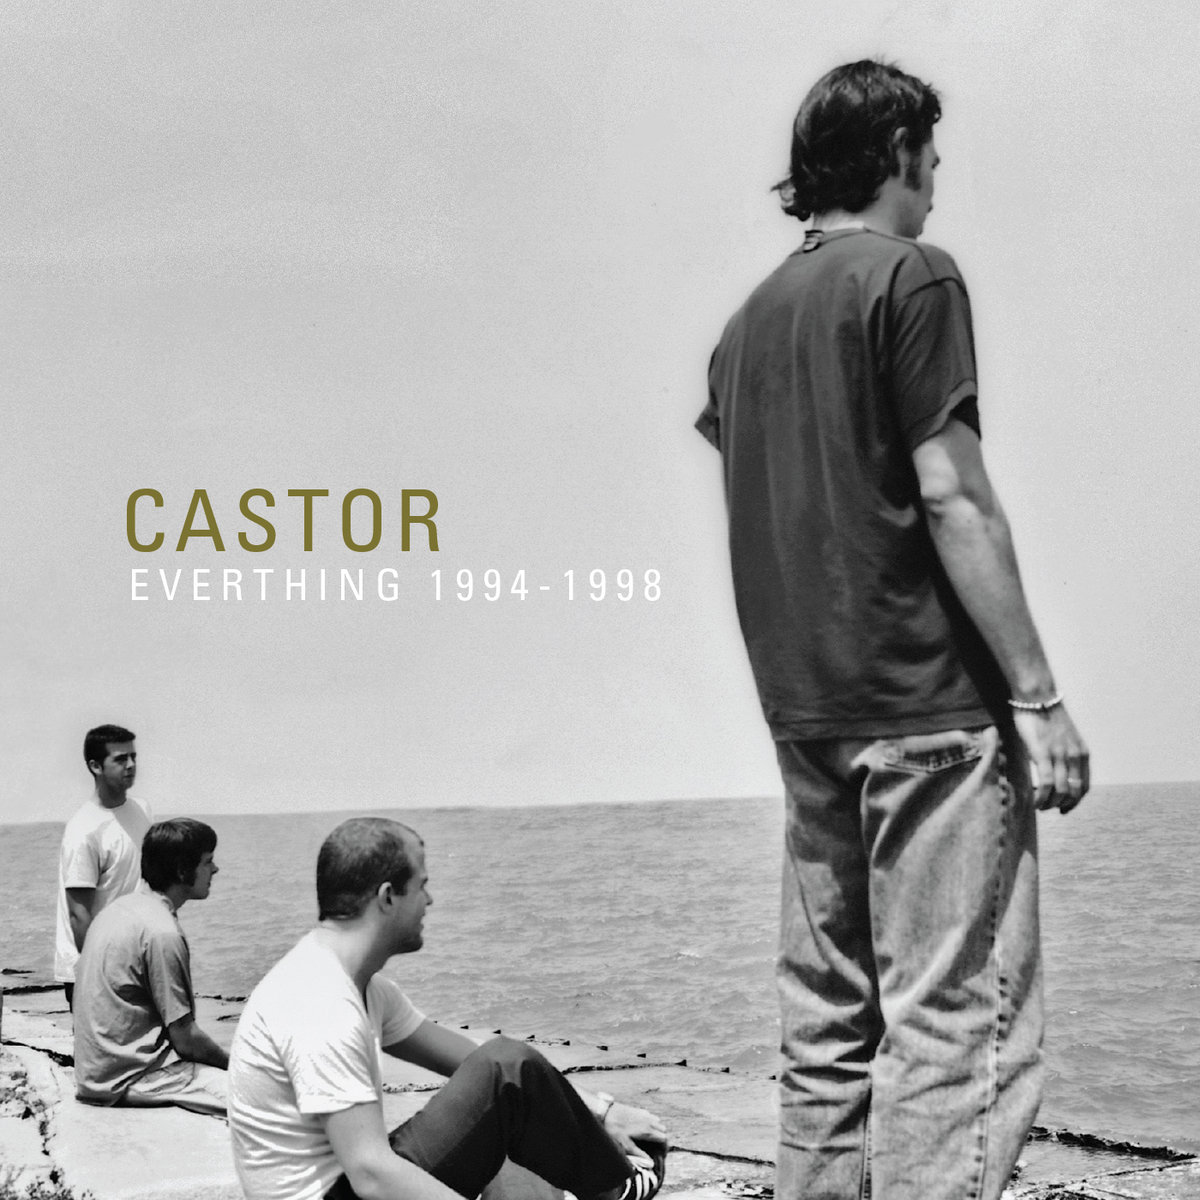 Everything 1994-1998 | Castor